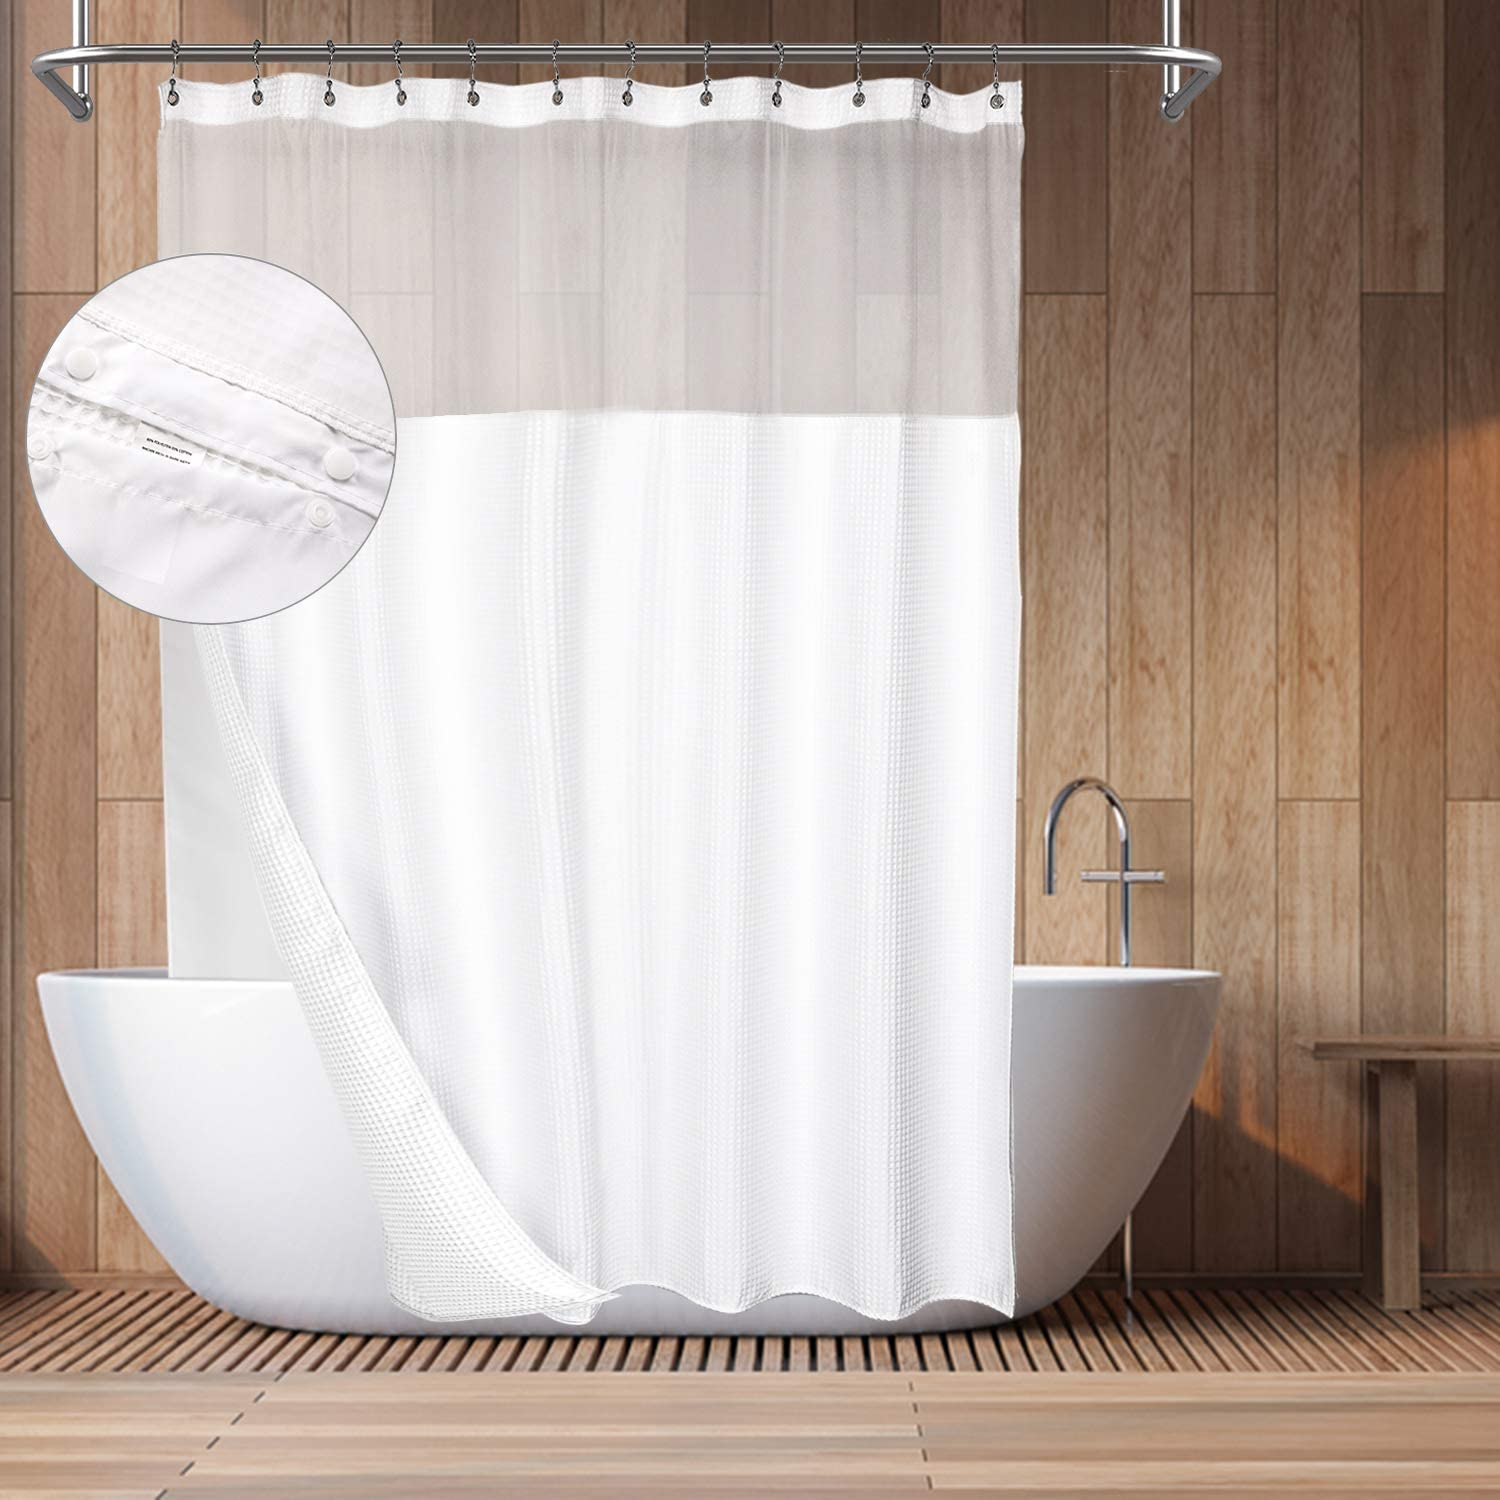 """Barossa Design Hotel Style Cotton Shower Curtain with Snap-in Fabric Liner, 84"""" Extra Long, Mesh Window Top, Honeycomb Waffle Weave Cotton Blend Fabric, Washable, White, 71x84 Inches White 71Wx84H"""